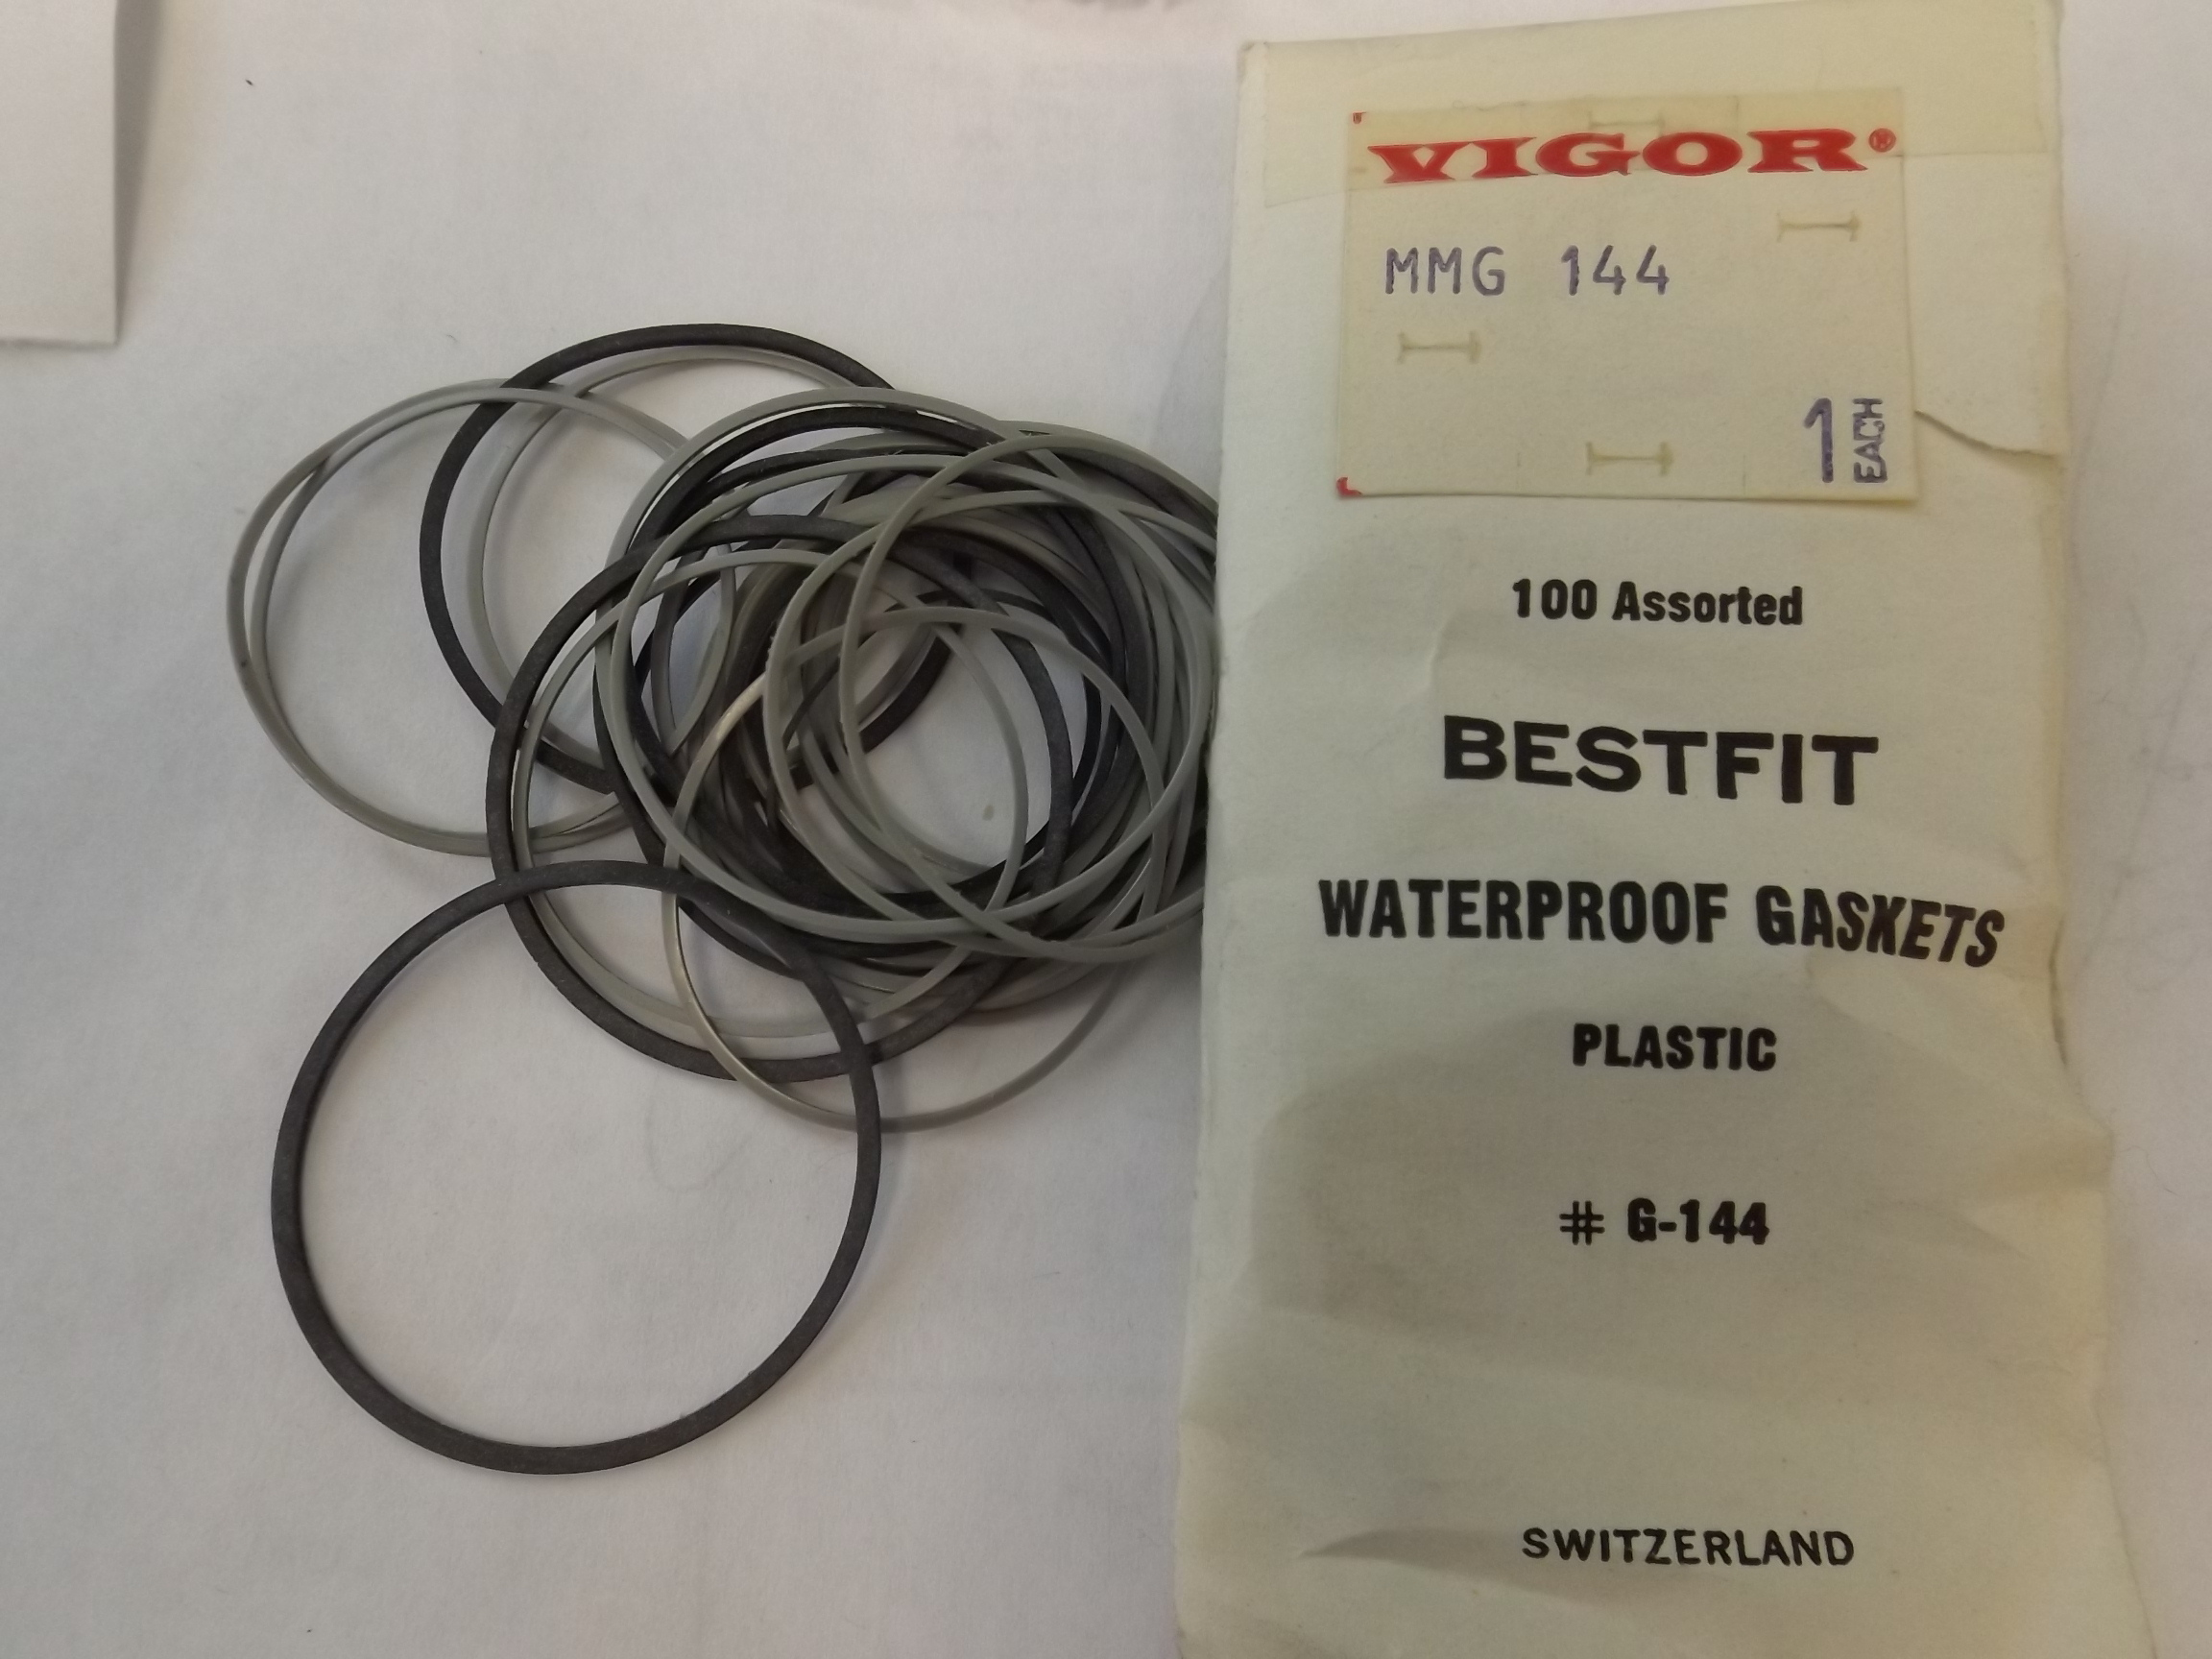 MM-G144 Waterproof Gaskets, Plastic- 100 pieces- Bestfit- One Only!